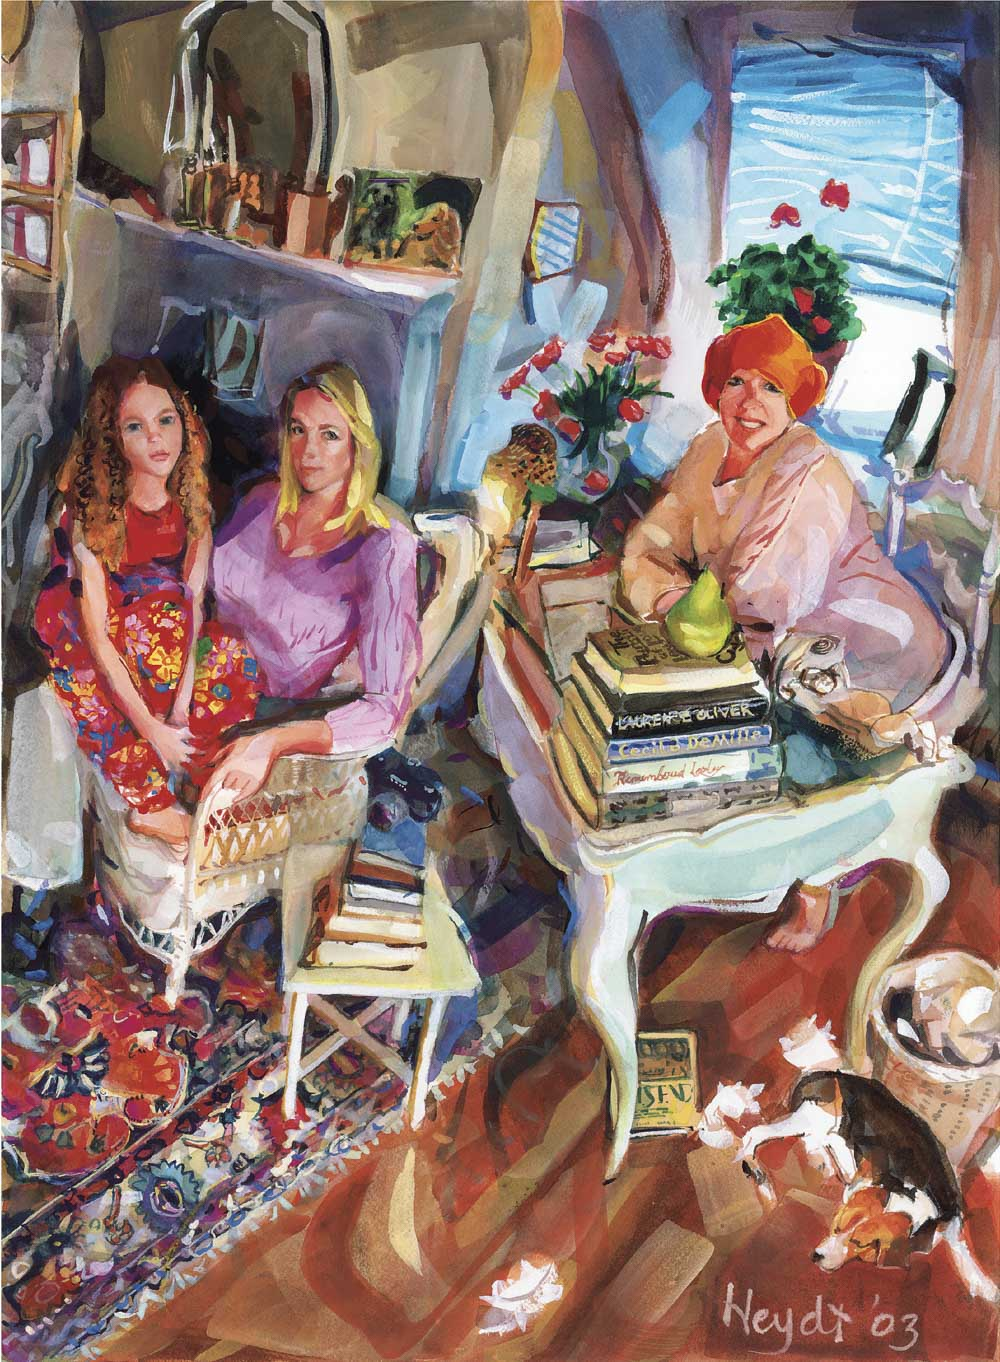 Maggie is that you? Maggie, Melanie and Ashlin-three generations of artists and divas